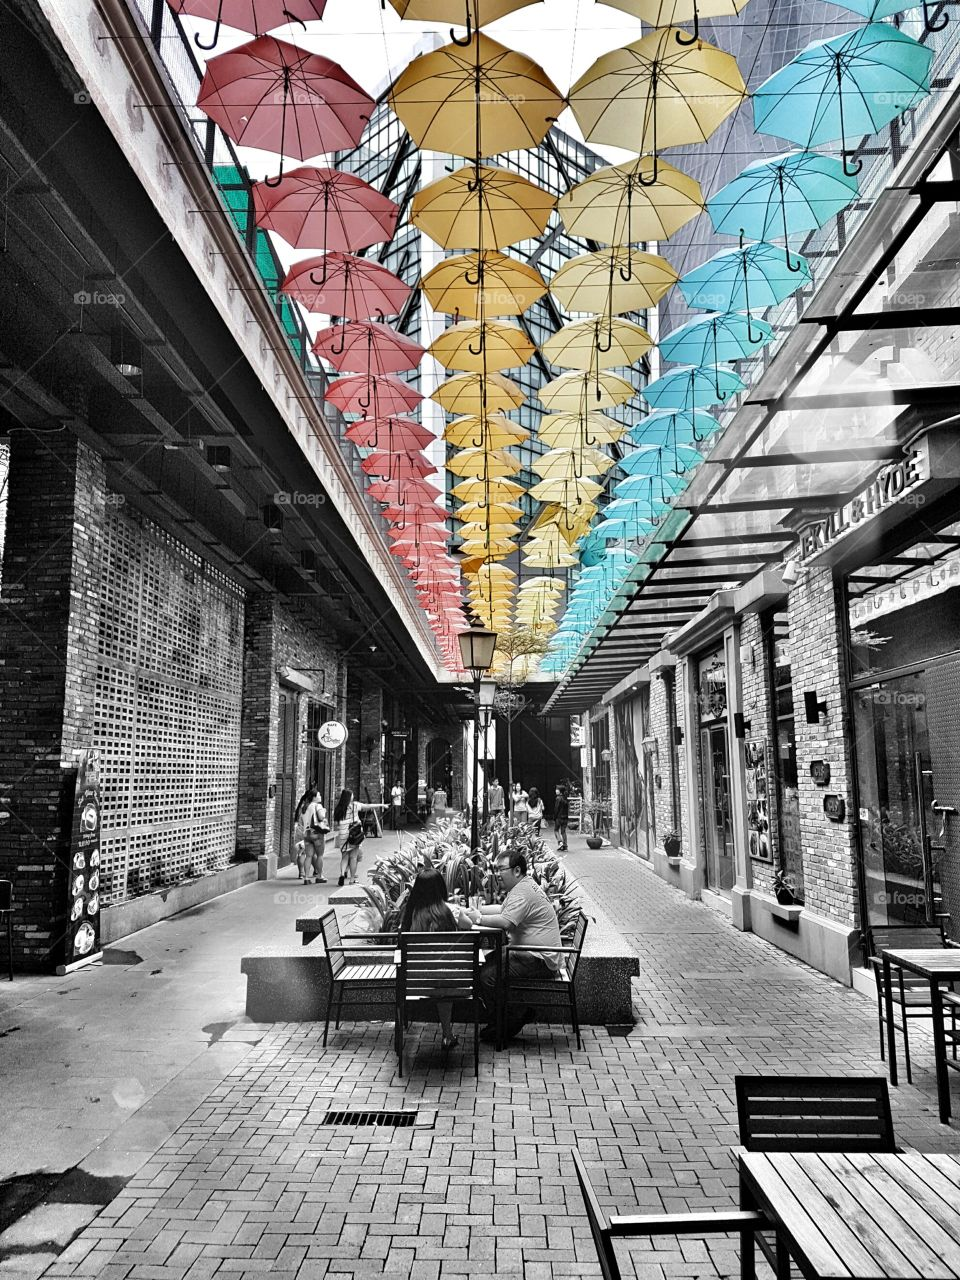 Street decorated with colorful umbrella